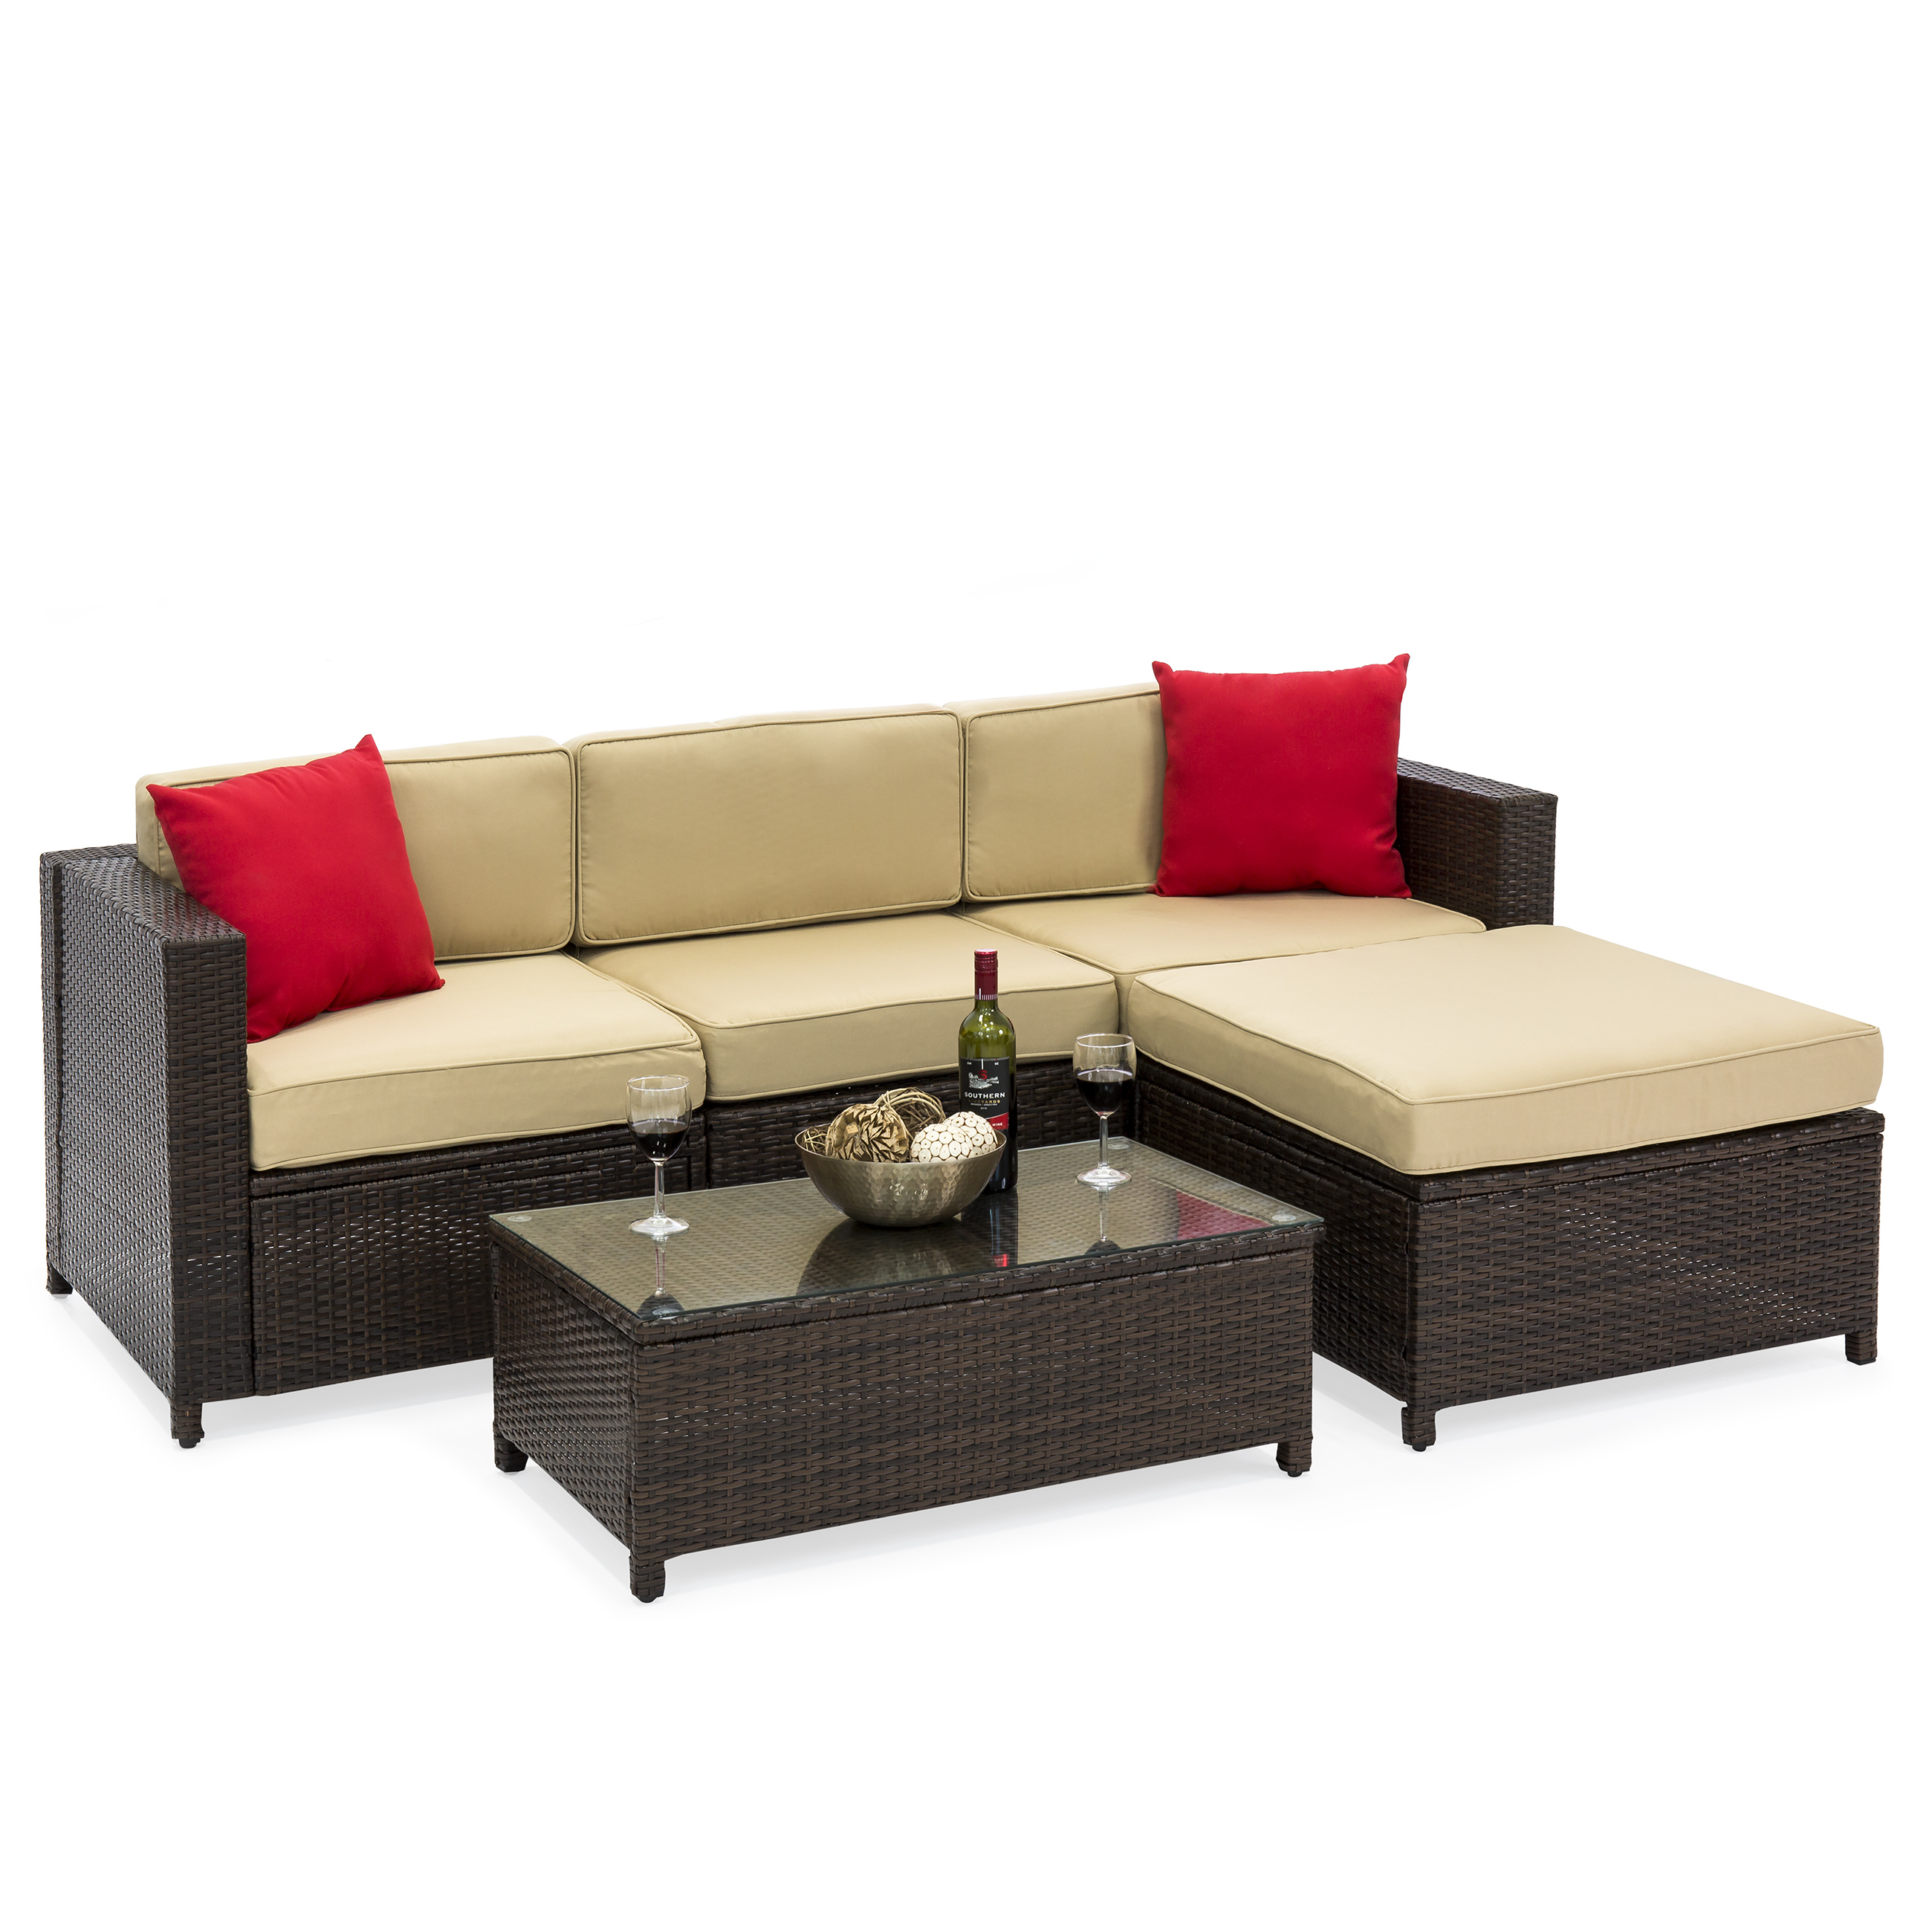 Best Choice Products 5-Piece Modular Wicker Patio Sectional Set w/ Glass Tabletop, Removable Cushion Covers - Brown